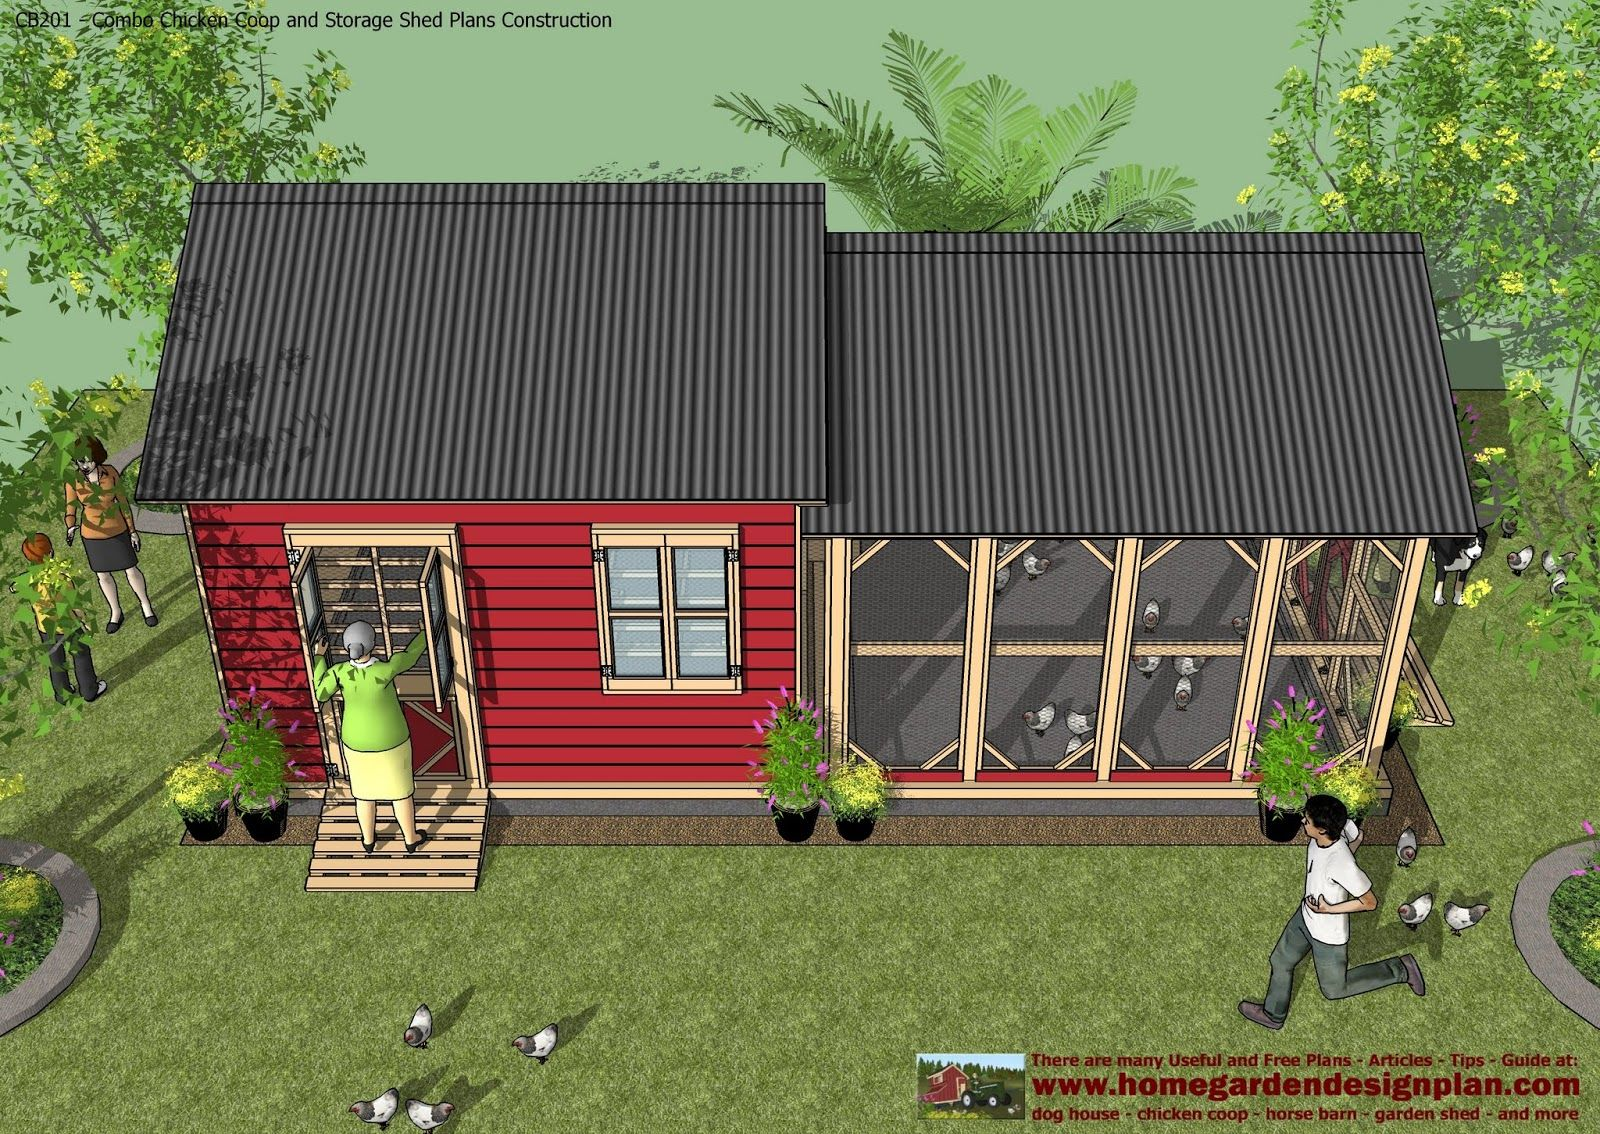 cb201 combo plans chicken coop plans construction garden sheds plans storage sheds - Chicken Co Op Plans And Greenhouse